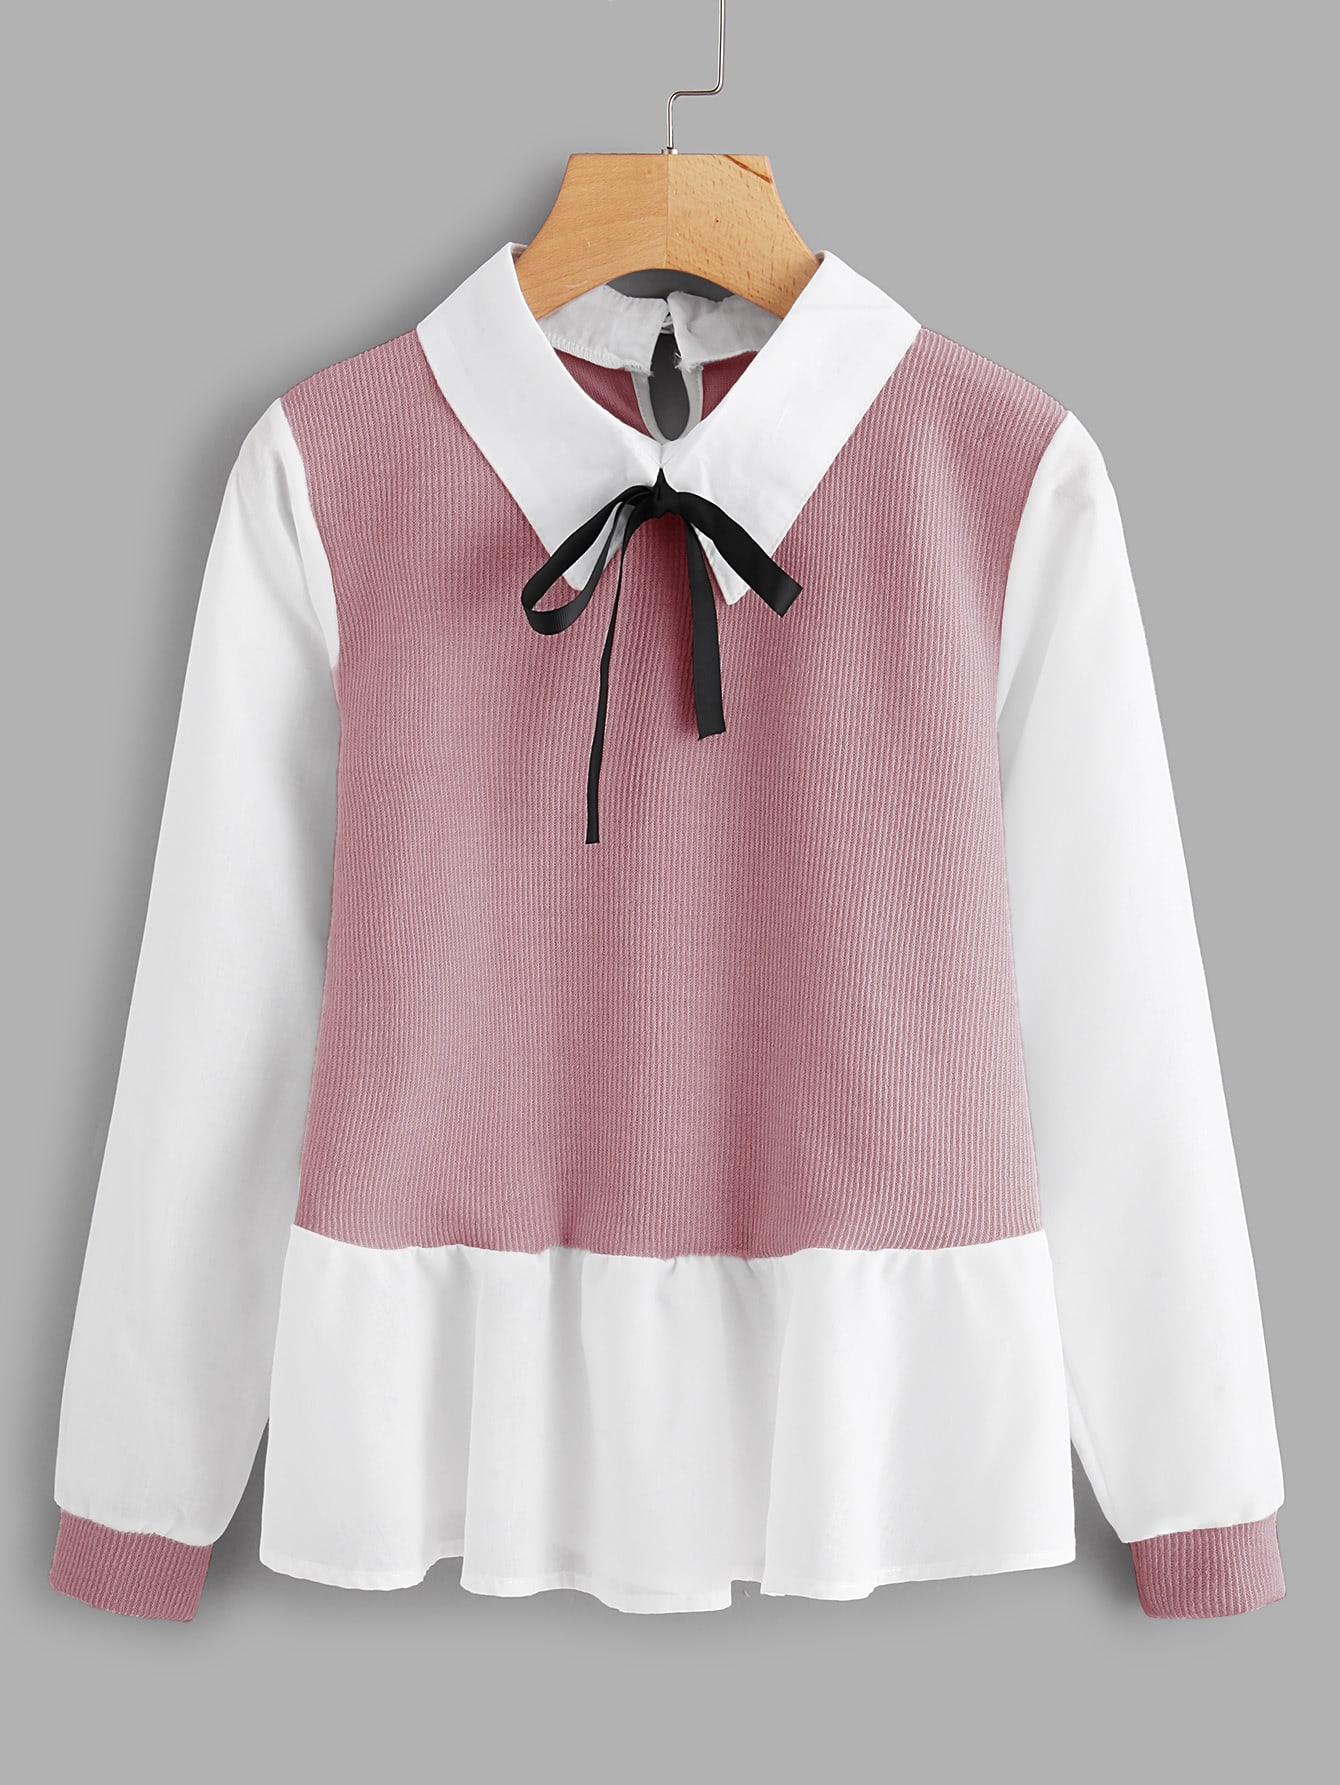 Ruffle Contrast Bow Tie Neck Blouse sony fdr ax33b